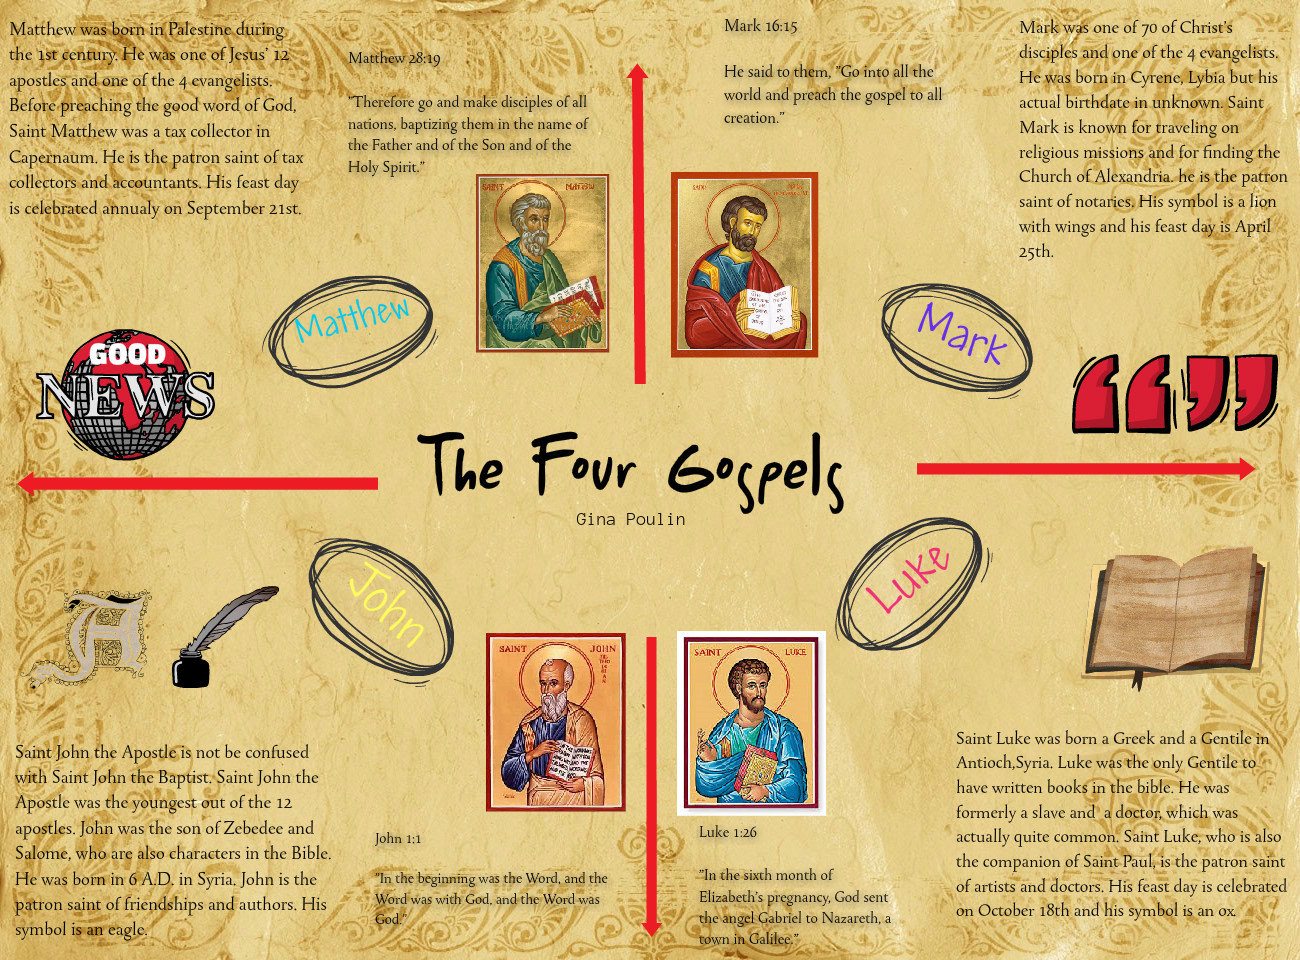 [2013] Gina Poulin: The Four Gospels